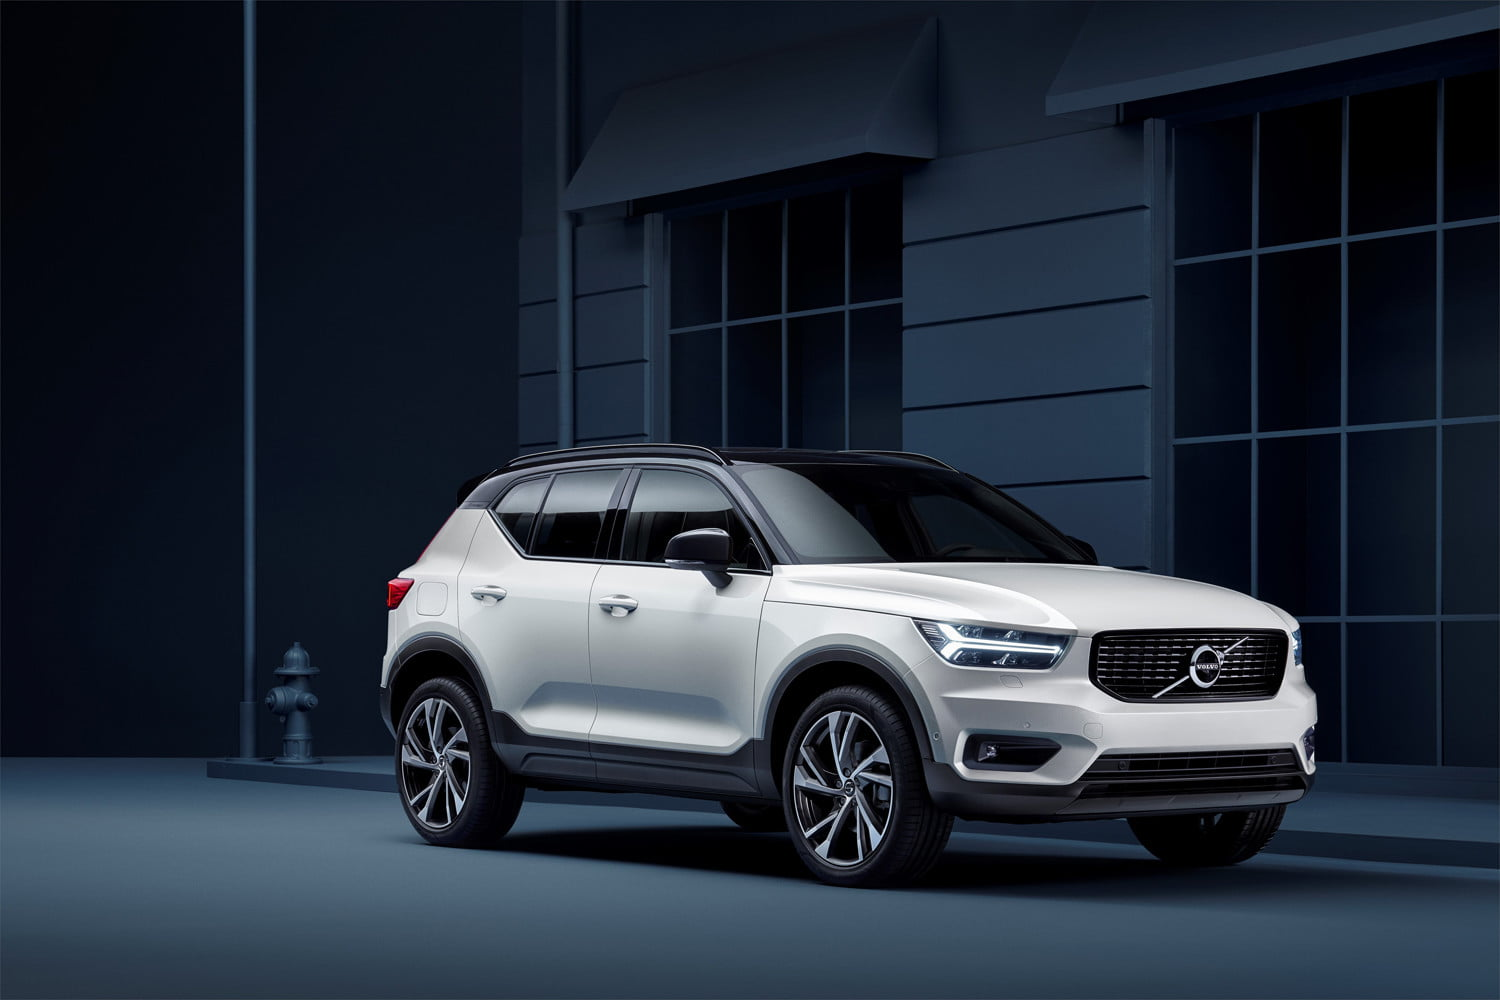 2020 Volvo XC40: News, New Options, Specs, Price >> All Electric Volvo Xc40 Variant To Debut In 2019 Report Says